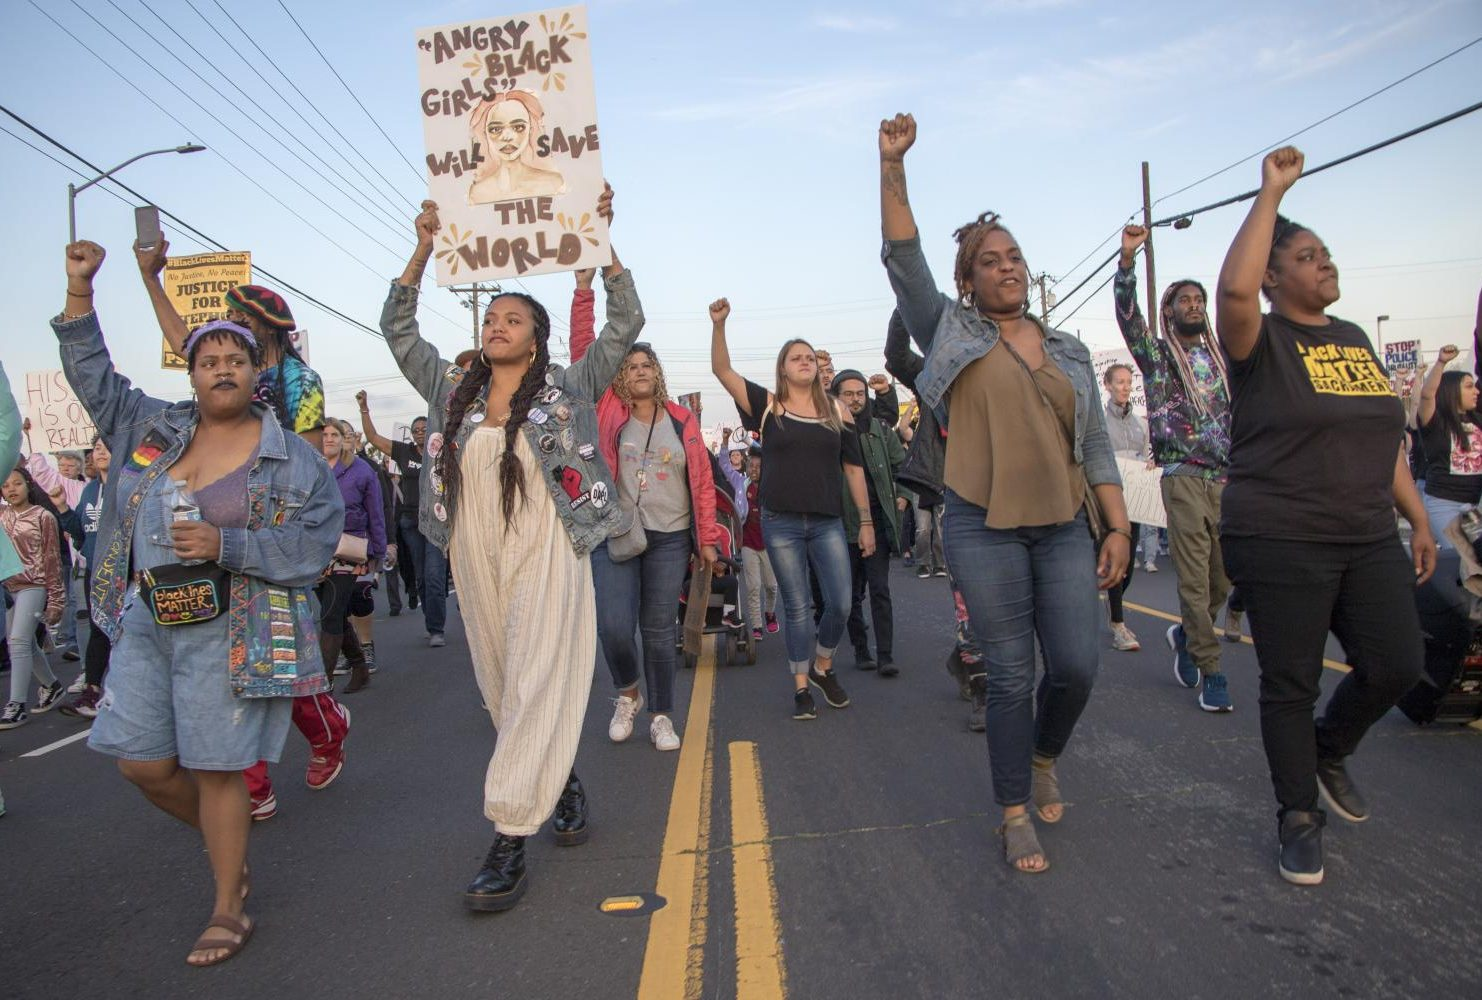 Black Lives Matter Sacramento demonstrators hold their fists in the air as they march down Meadowview Road during the one year anniversary of Stephon Clark's death in South Sacramento, Calif. on March 18, 2019. (Photo by Ashley Hayes-Stone)